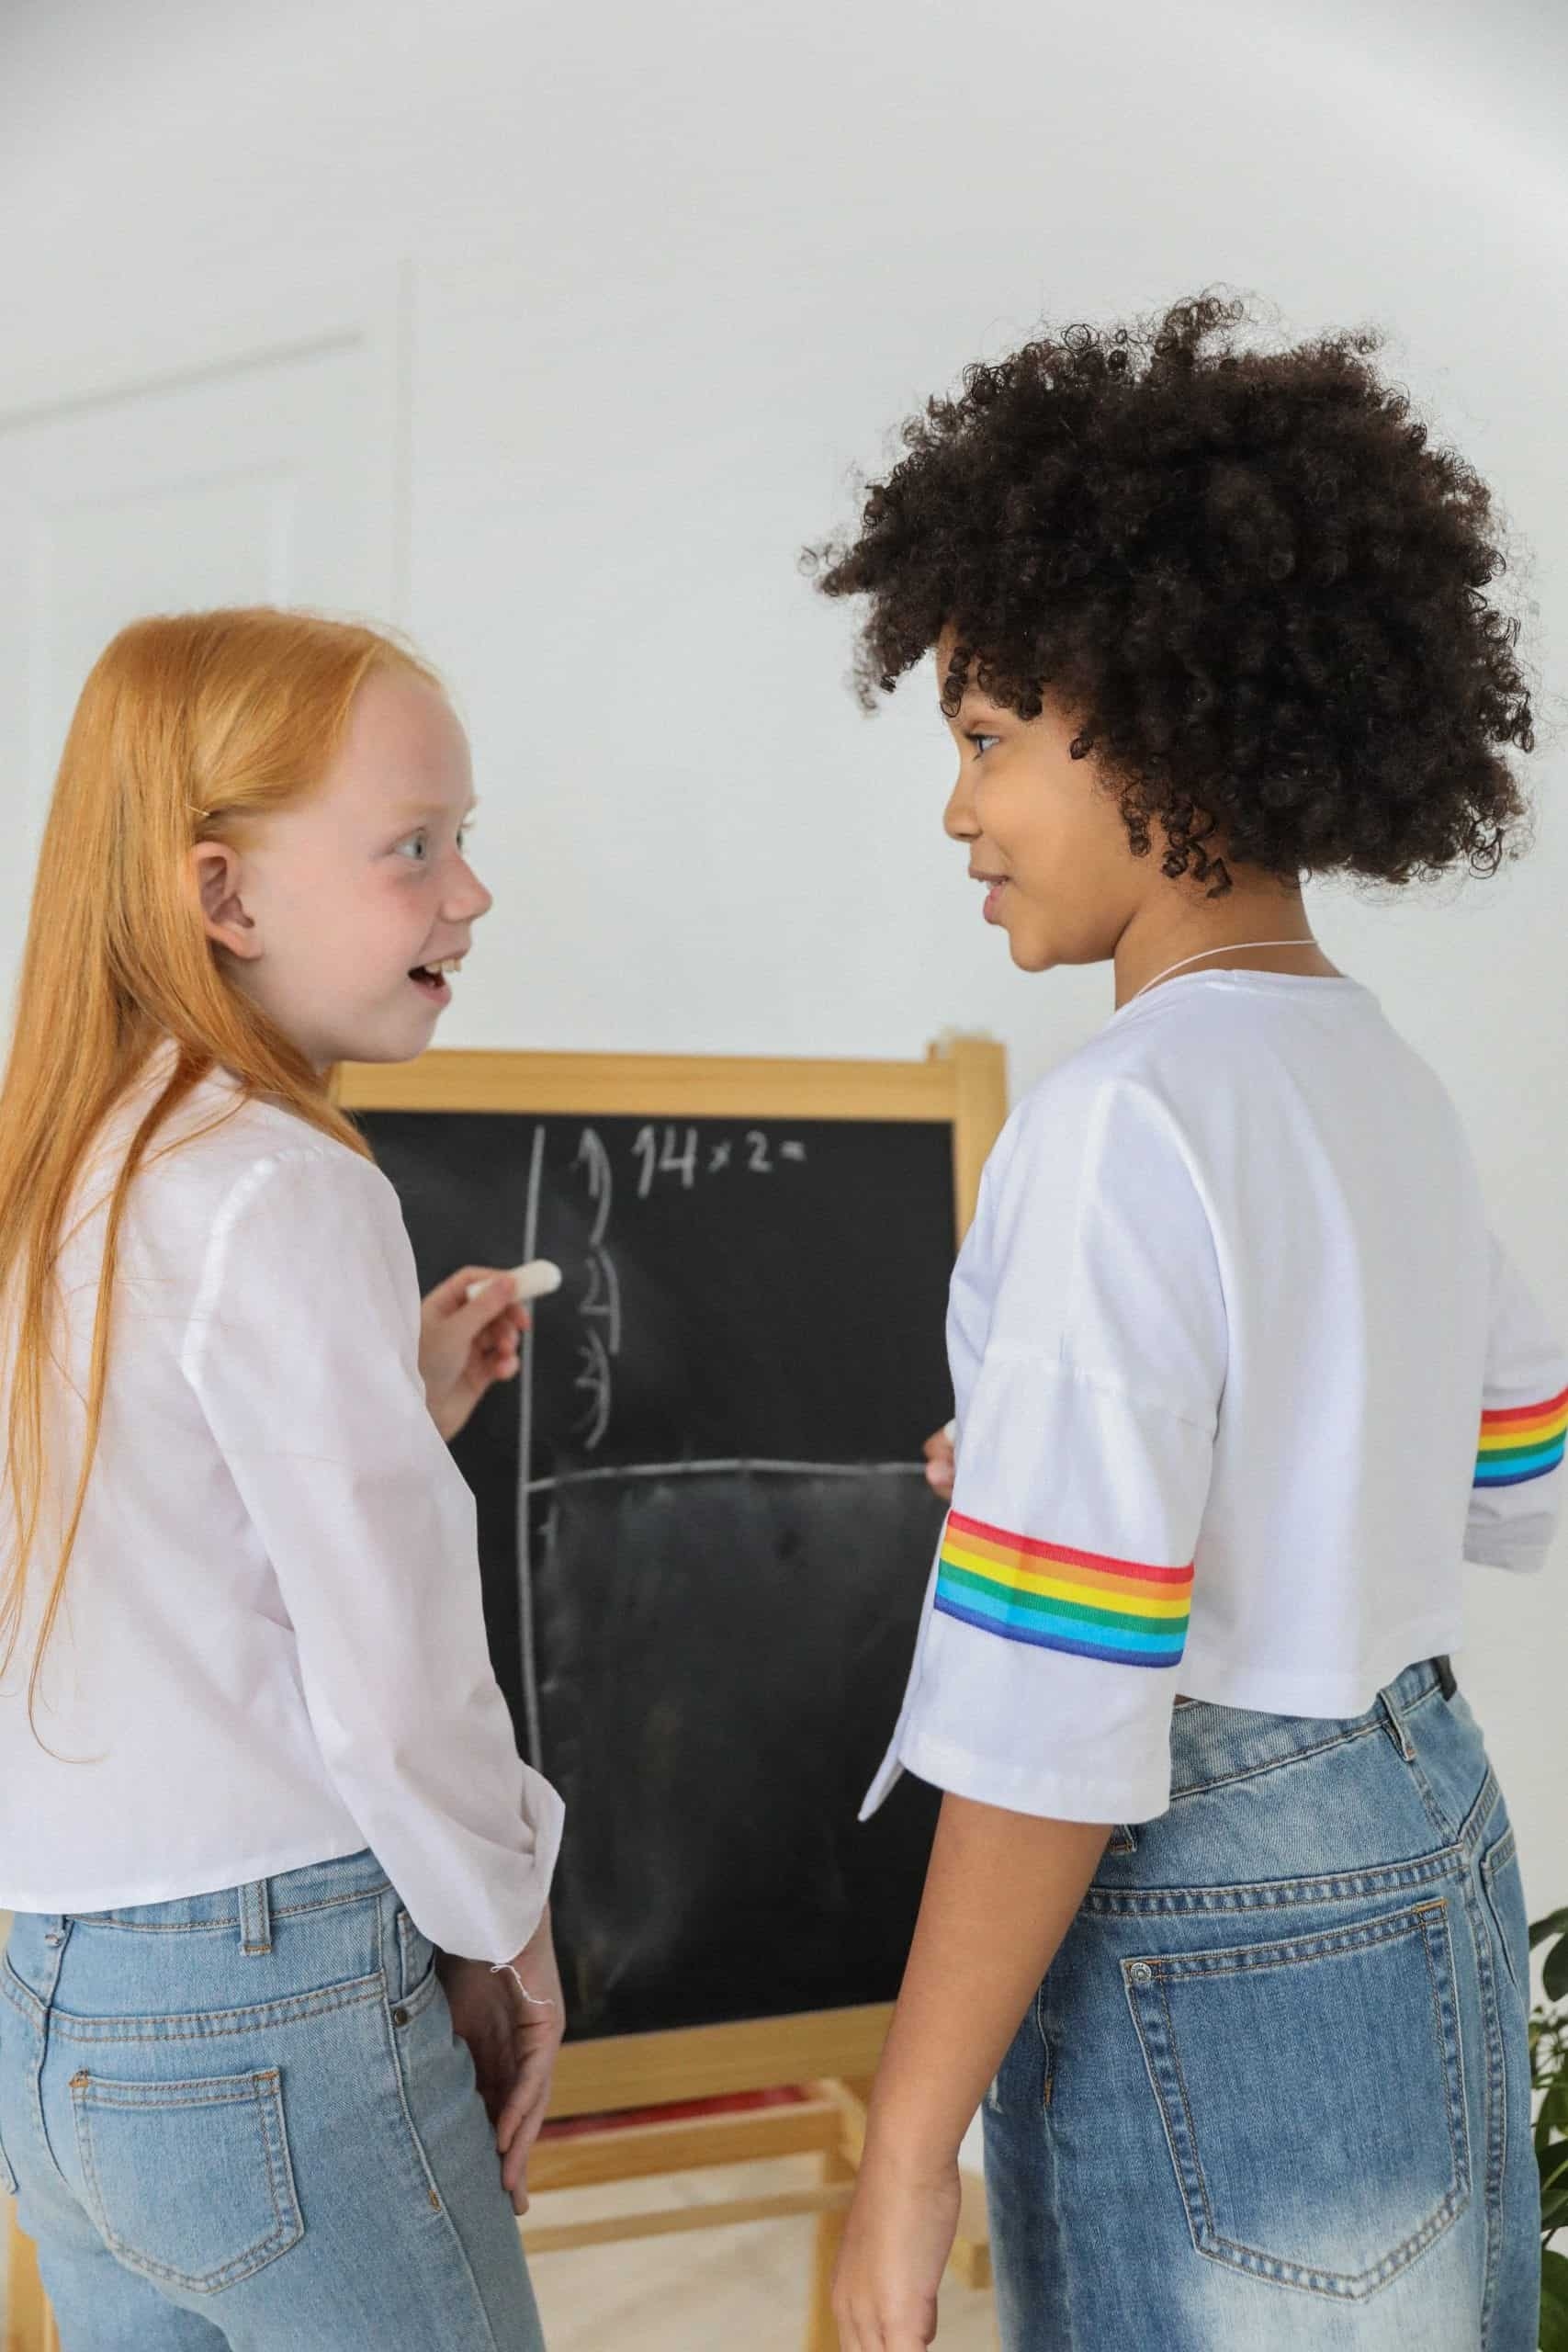 Two girls looking at each other and smiling while doing math problems on a chalkboard. The girl on the left has long red hair and is wearing a white long-sleeve blouse and blue jeans. The girl on the right has short curly black hair and is wearing a white mid-sleeve blouse with a rainbow stripe on the sleeve and blue jeans